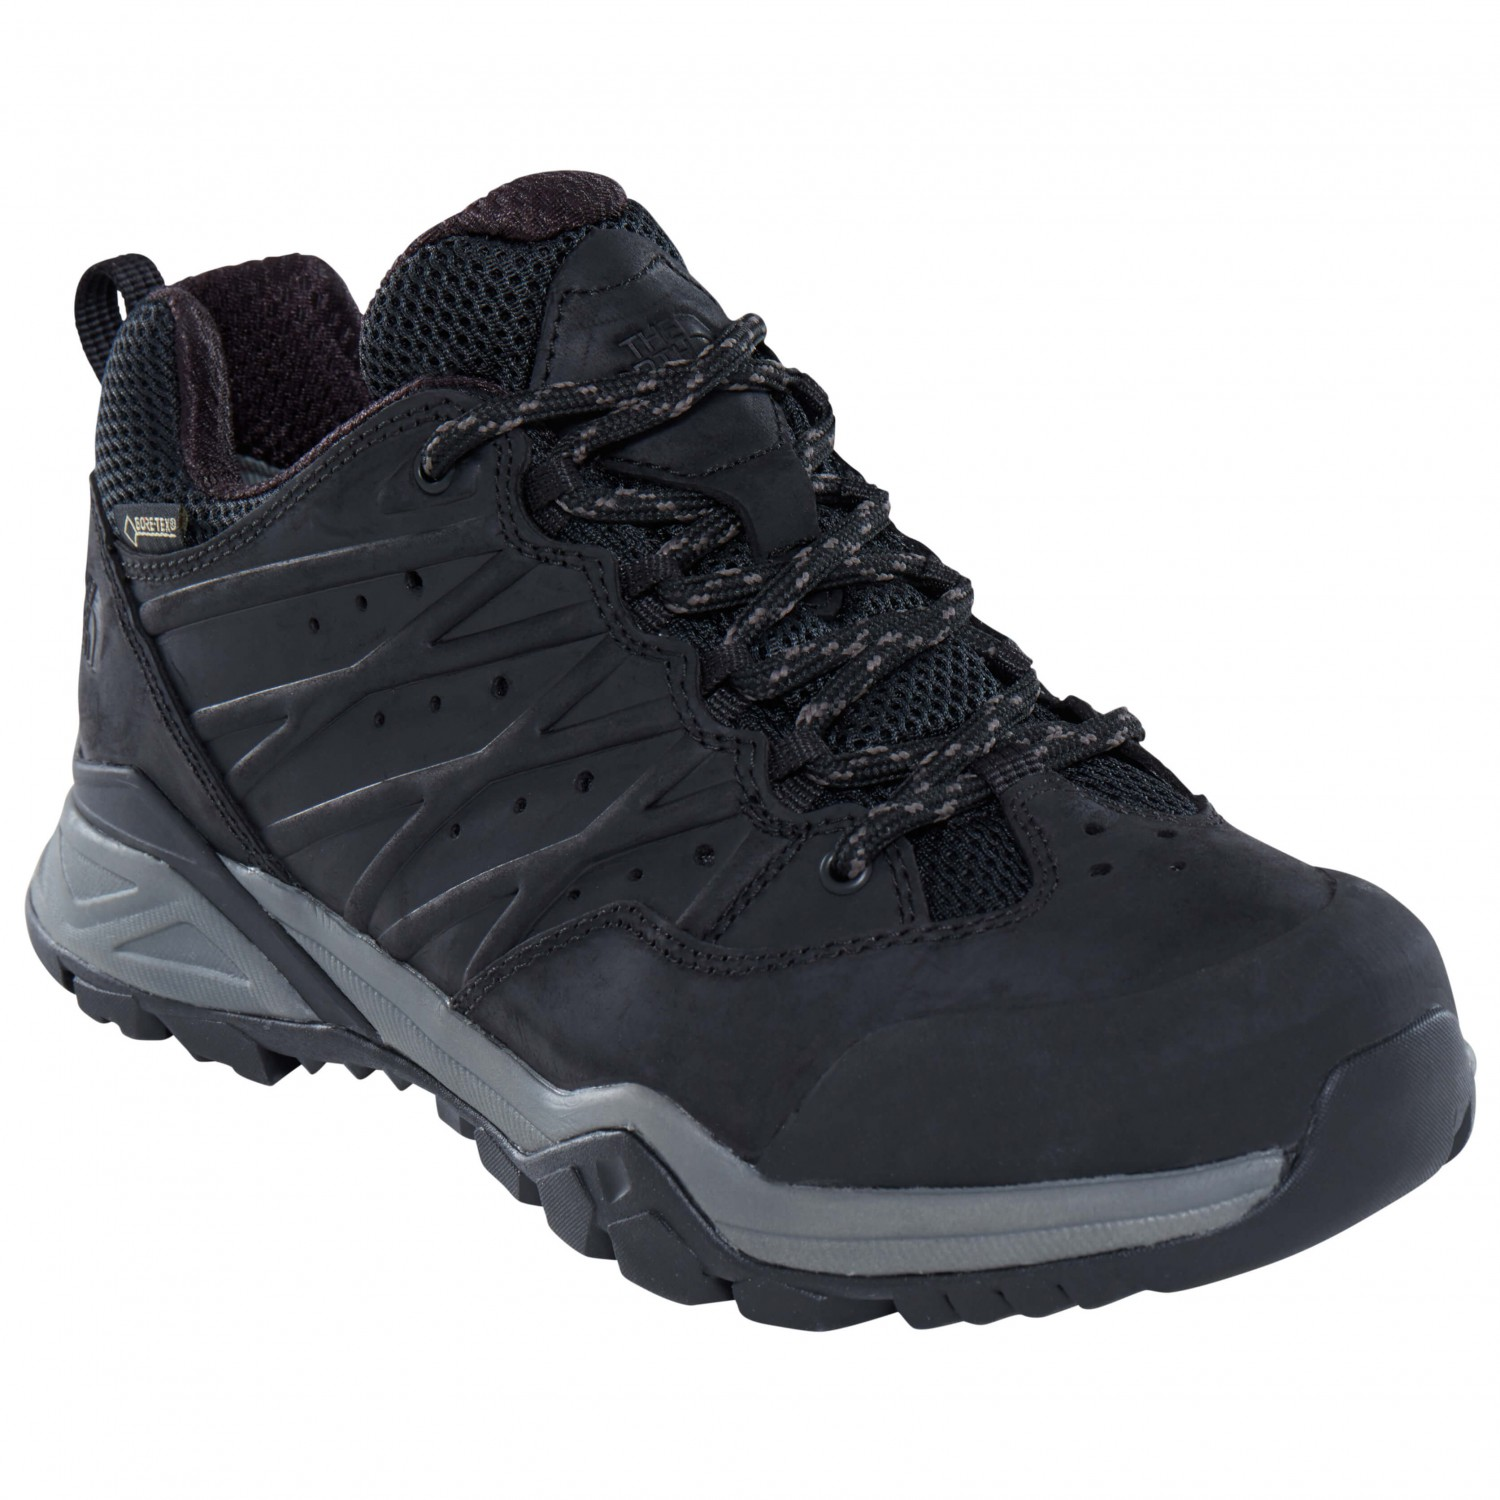 The North Face Hedgehog Hike II GTX Shoes Women TNF Black/TNF Black US 6